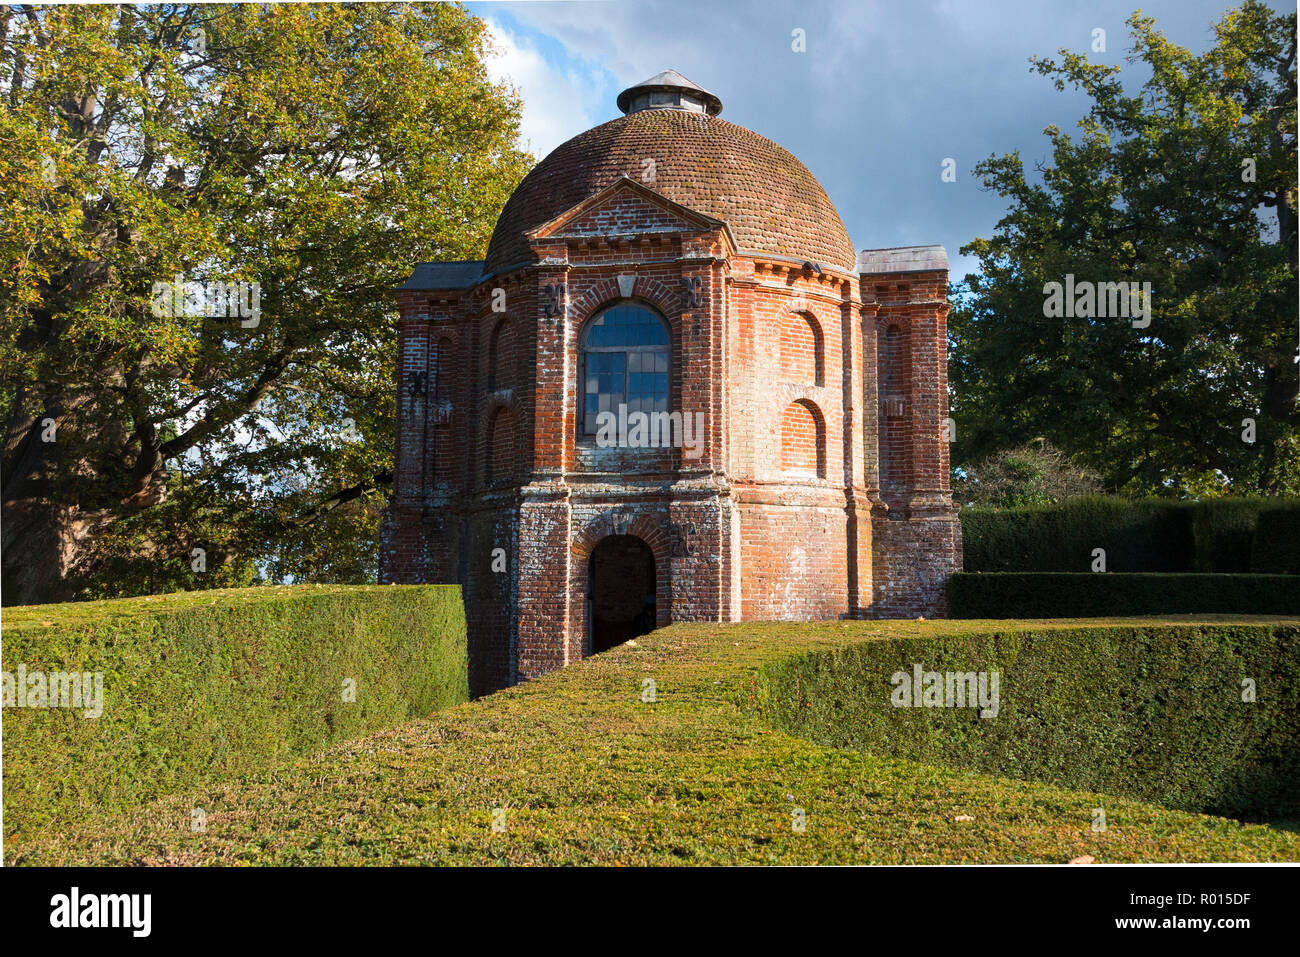 Summerhouse in the garden of The Vyne; Tudor stately home. The Vyne is a 16th-century estate and country house nr Sherborne St John nr Basingstoke UK - Stock Image